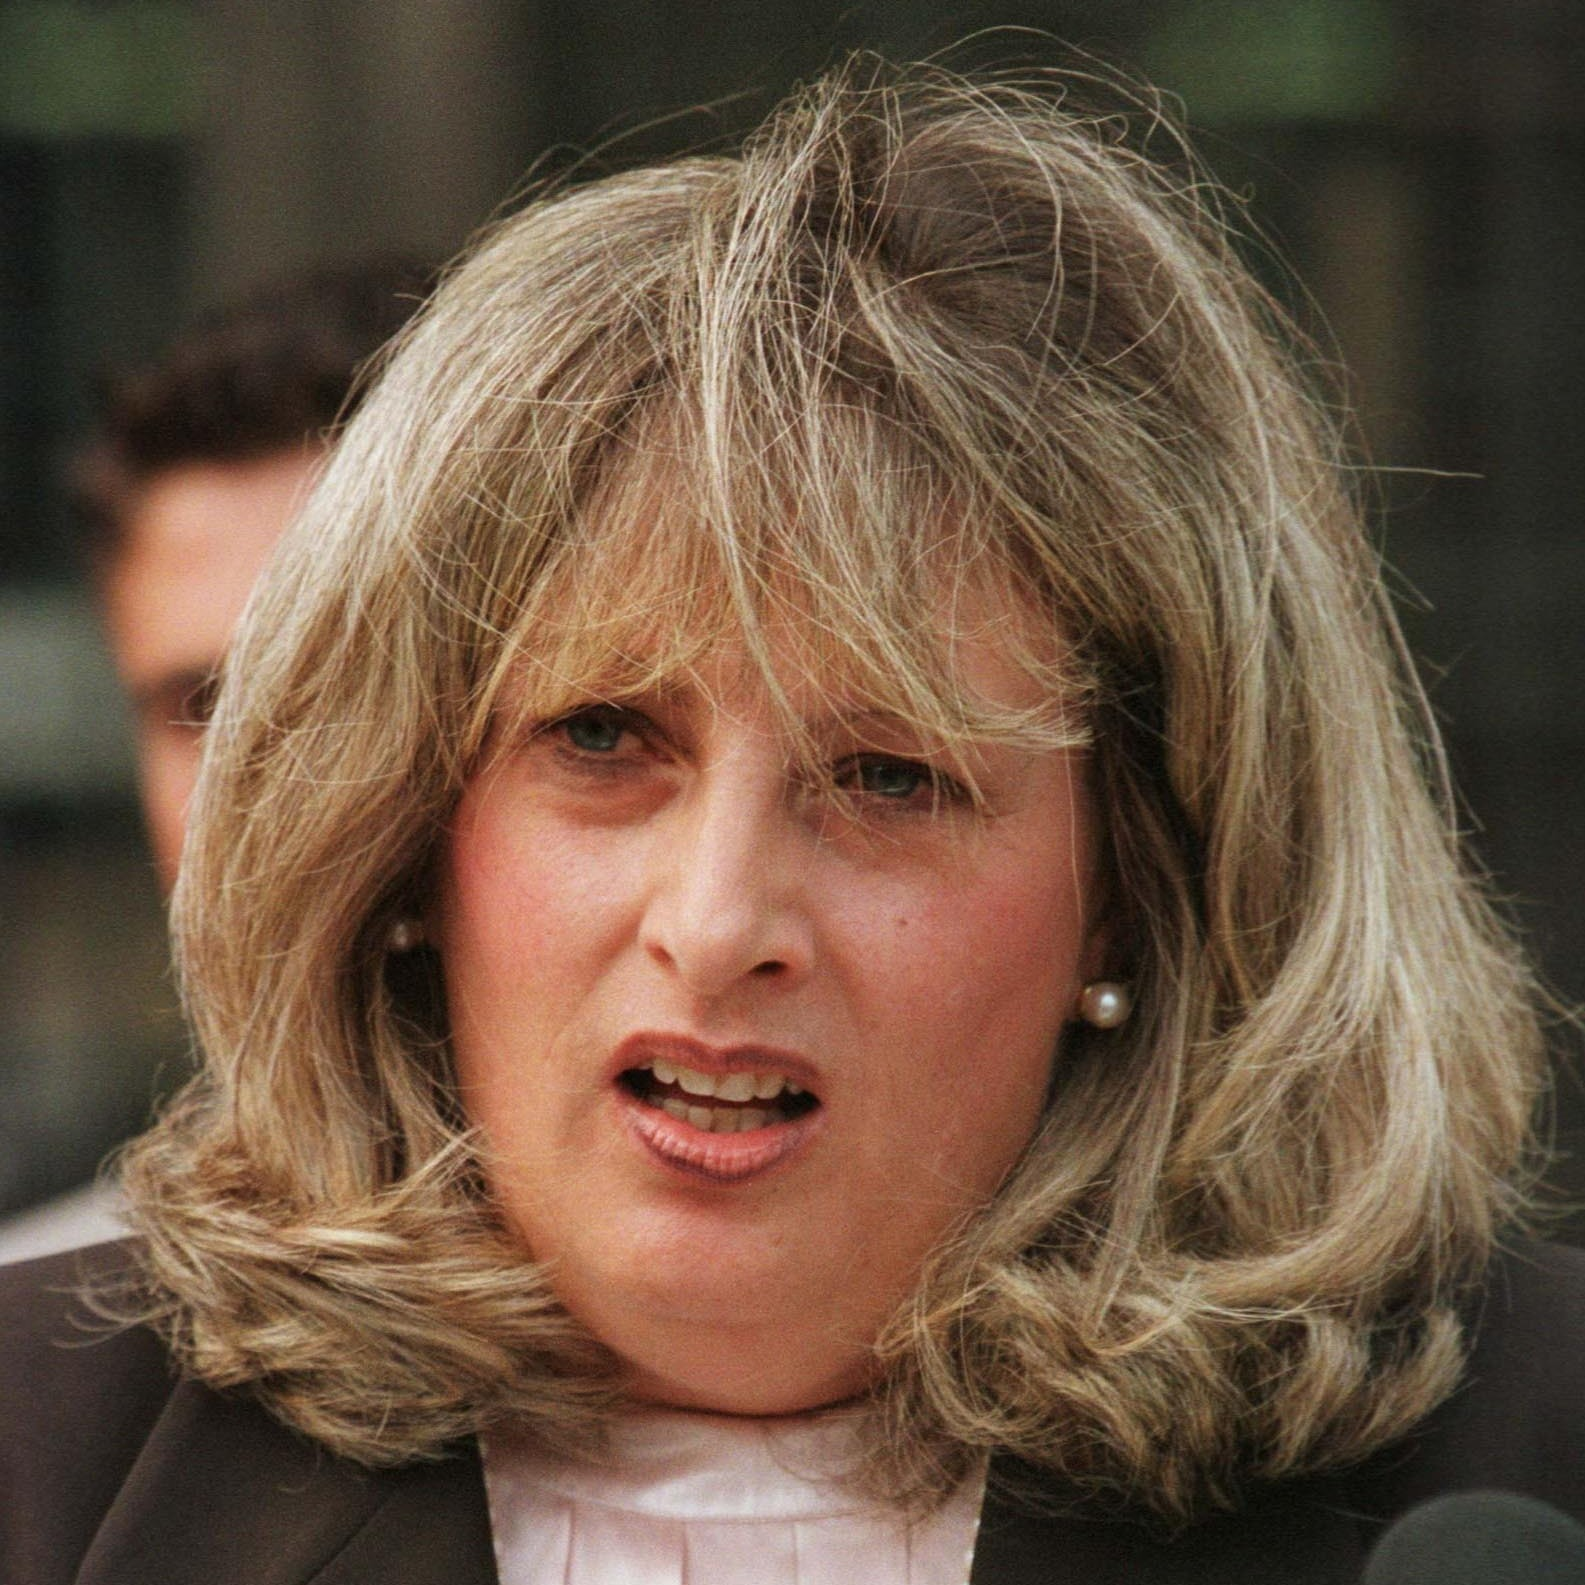 Linda Tripp secretly taped phone conversations with Monica Lewinsky, which ultimately led to President Clinton's impeachment.